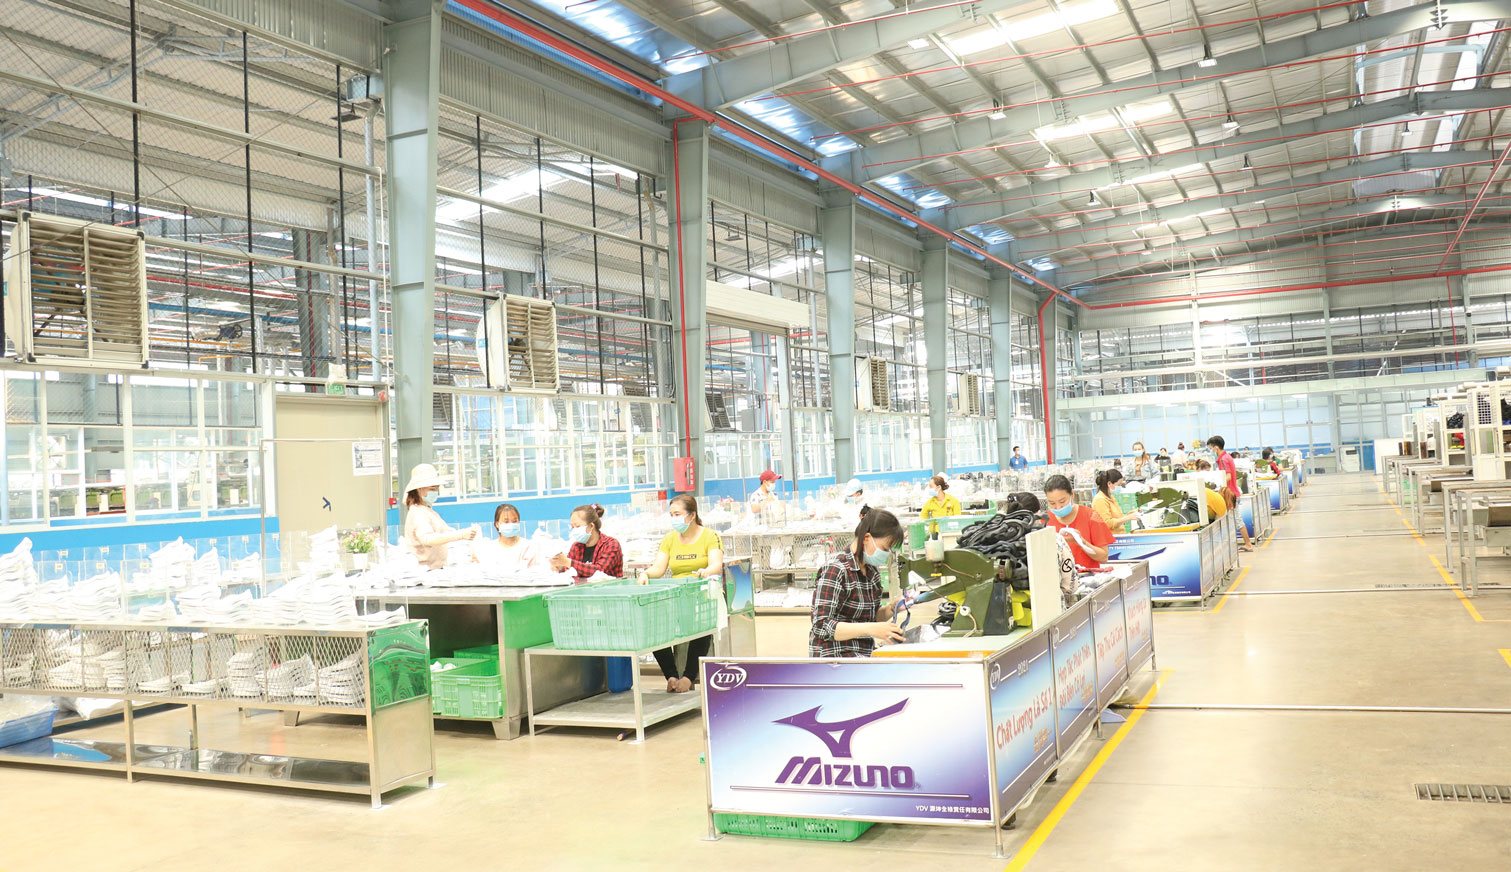 Nguyen Khoi Toan Loc Co., Ltd (100 percent capital from Taiwan) invested in 2 projects in Ben Luc district with a total capital of 20 million USD and created jobs for 800 workers (Illustrated photo)